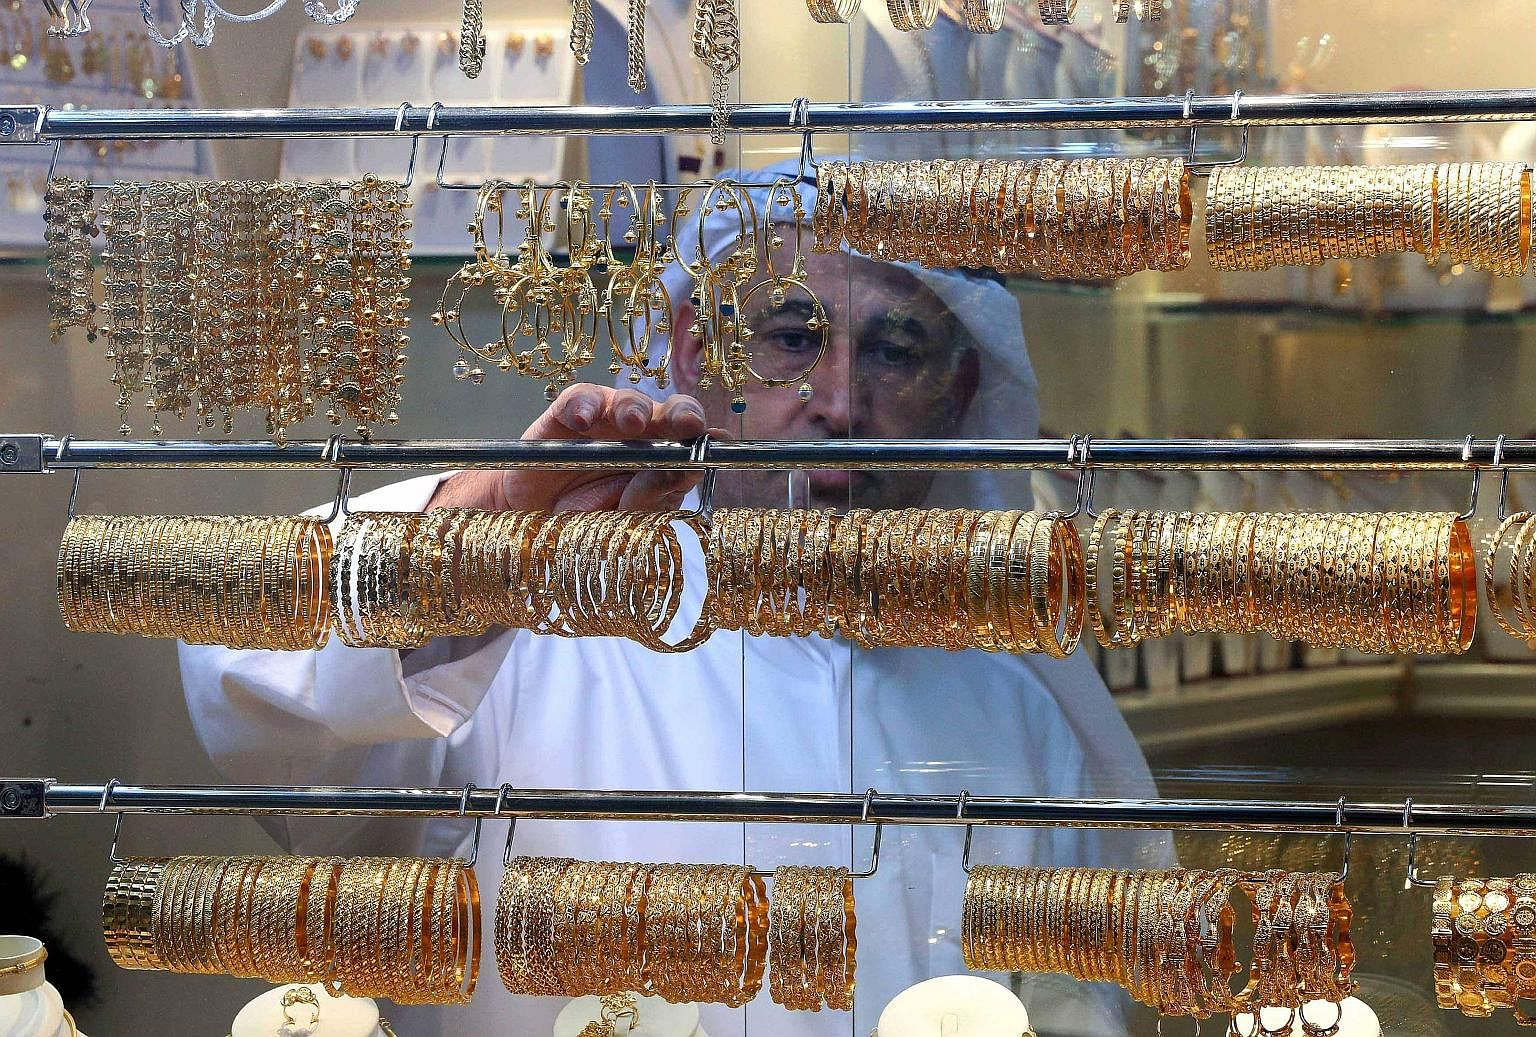 A Palestinian woman shopping for gold on March 30. Gold prices feast on economic uncertainty, and this year's buffet of market woes fattened the yellow metal up to recent highs.